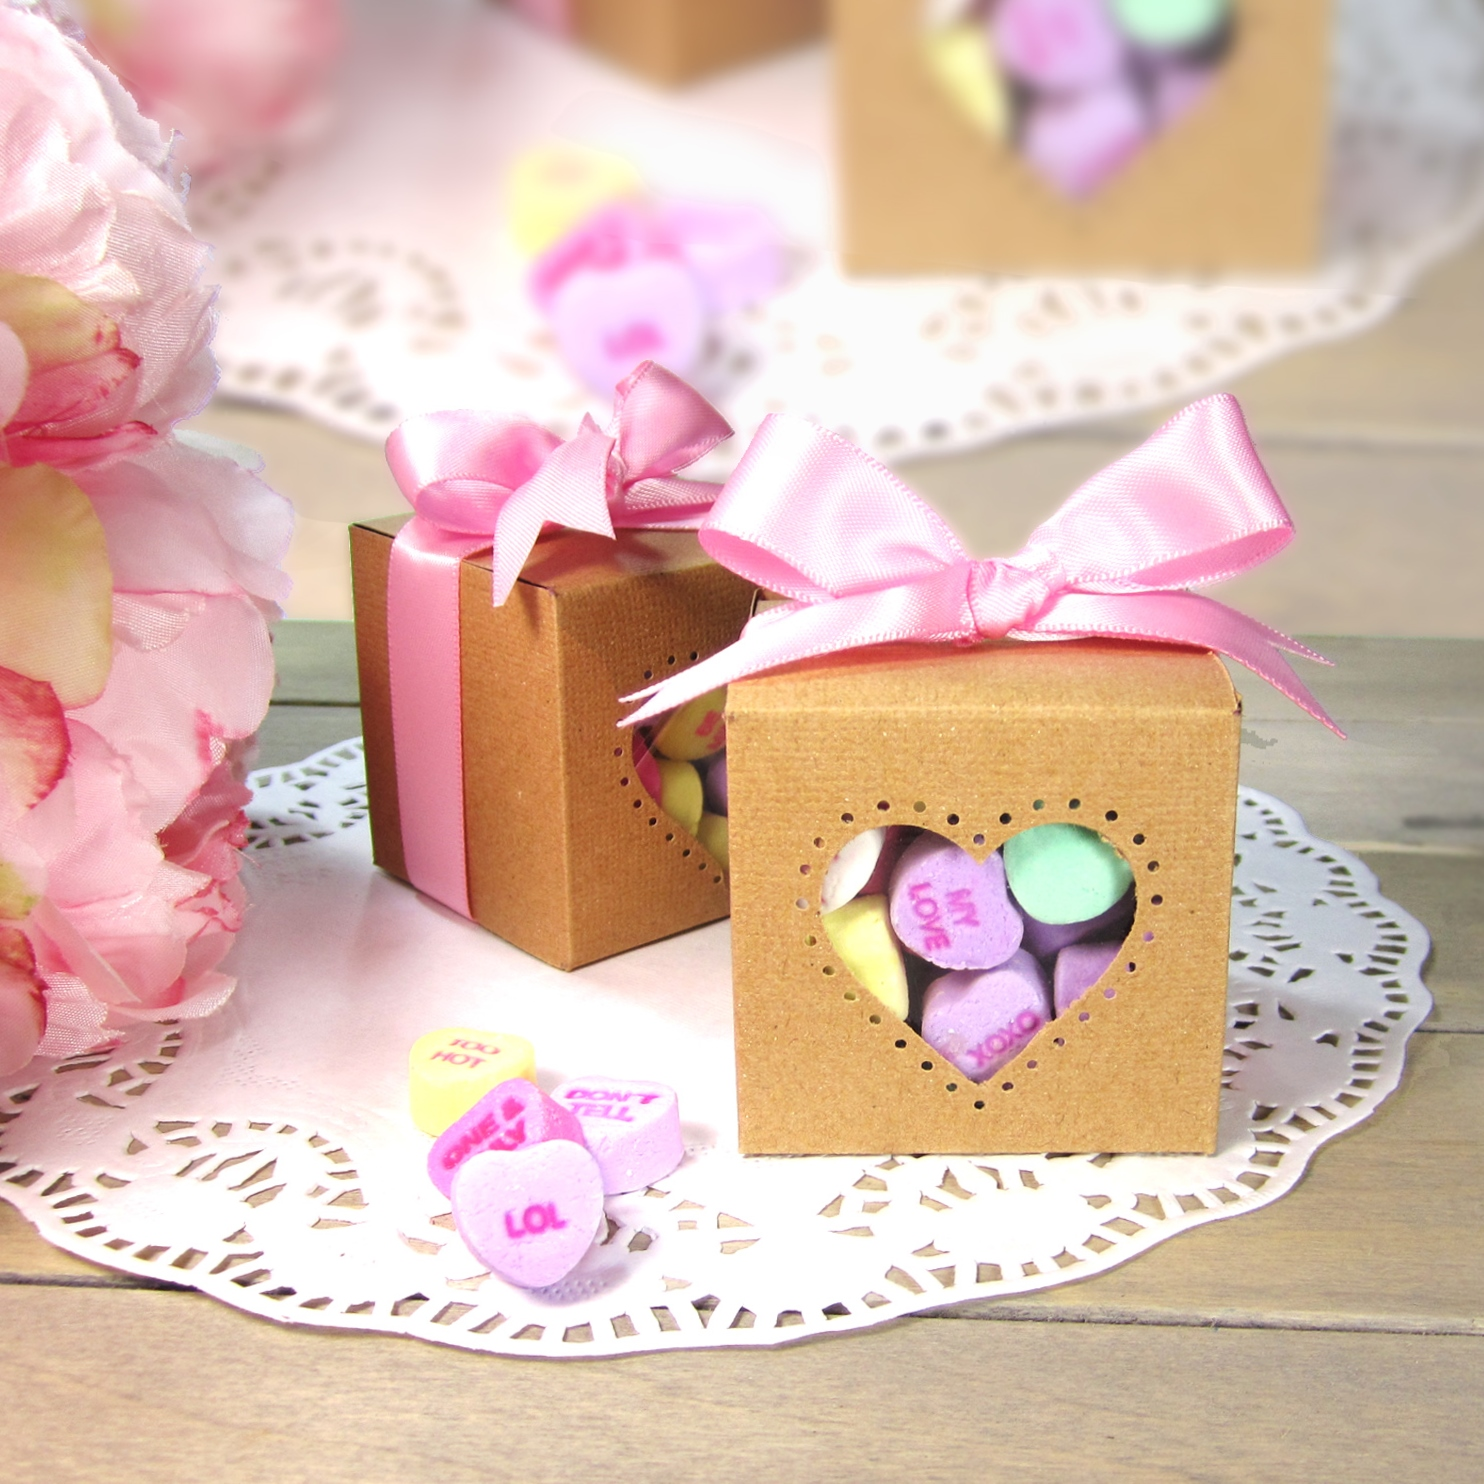 365 Designs Candy Hearts Favor Box For Bridal Baby Showers Or Any